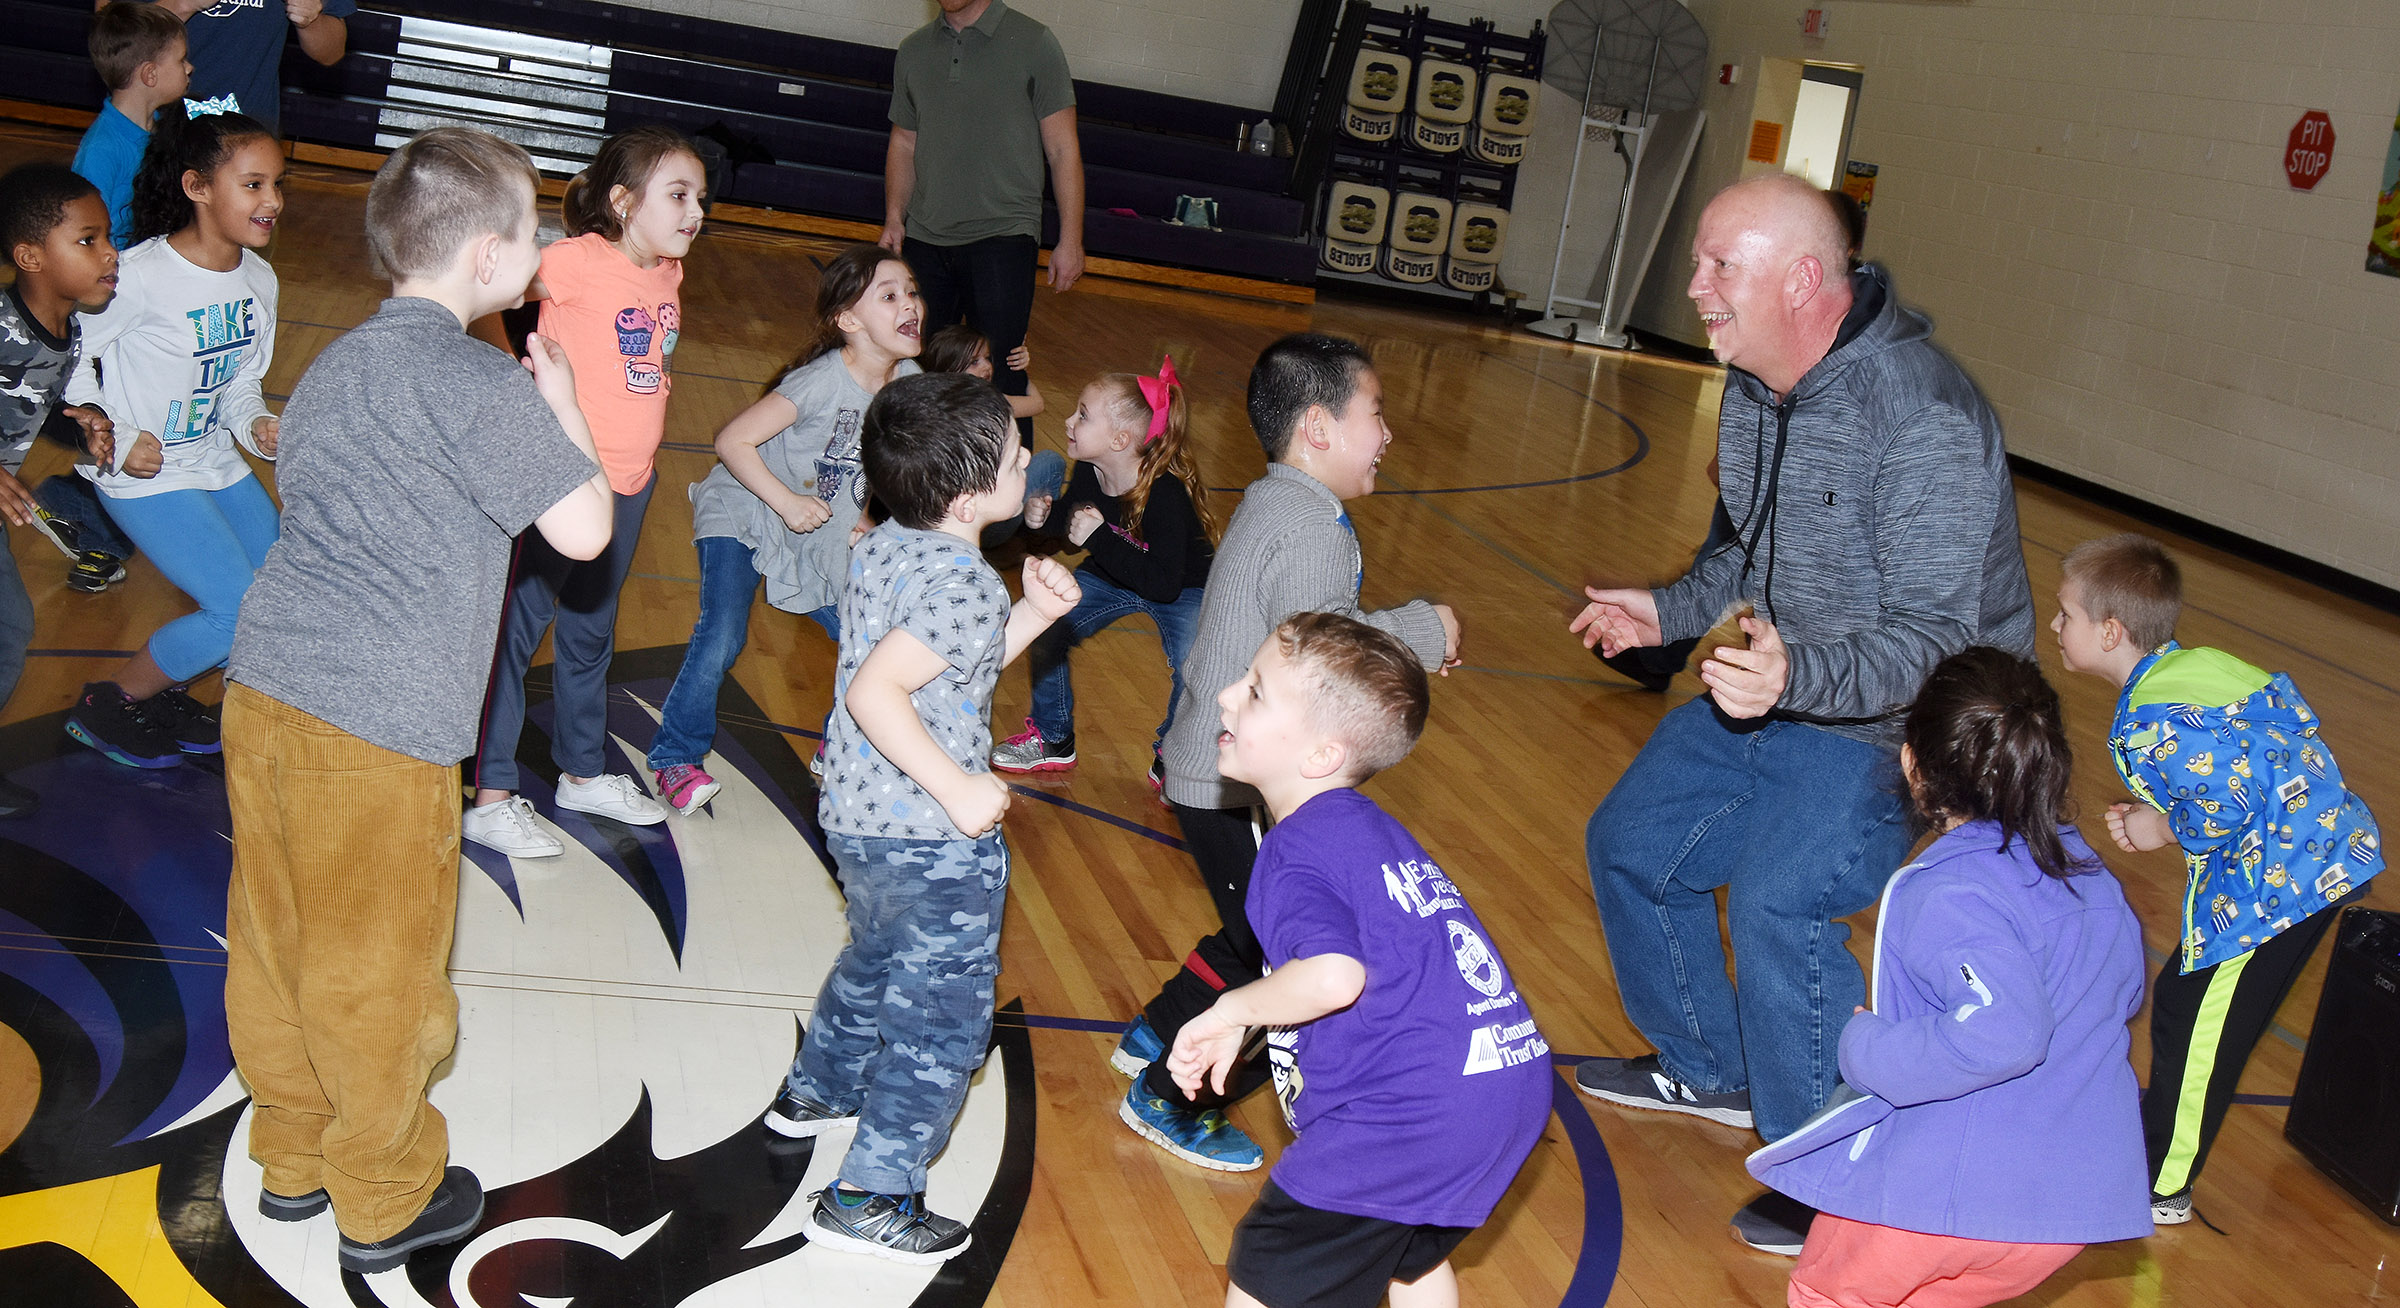 Campbellsville/Taylor County Chamber of Commerce Board member Rob Collins dances with CES students.